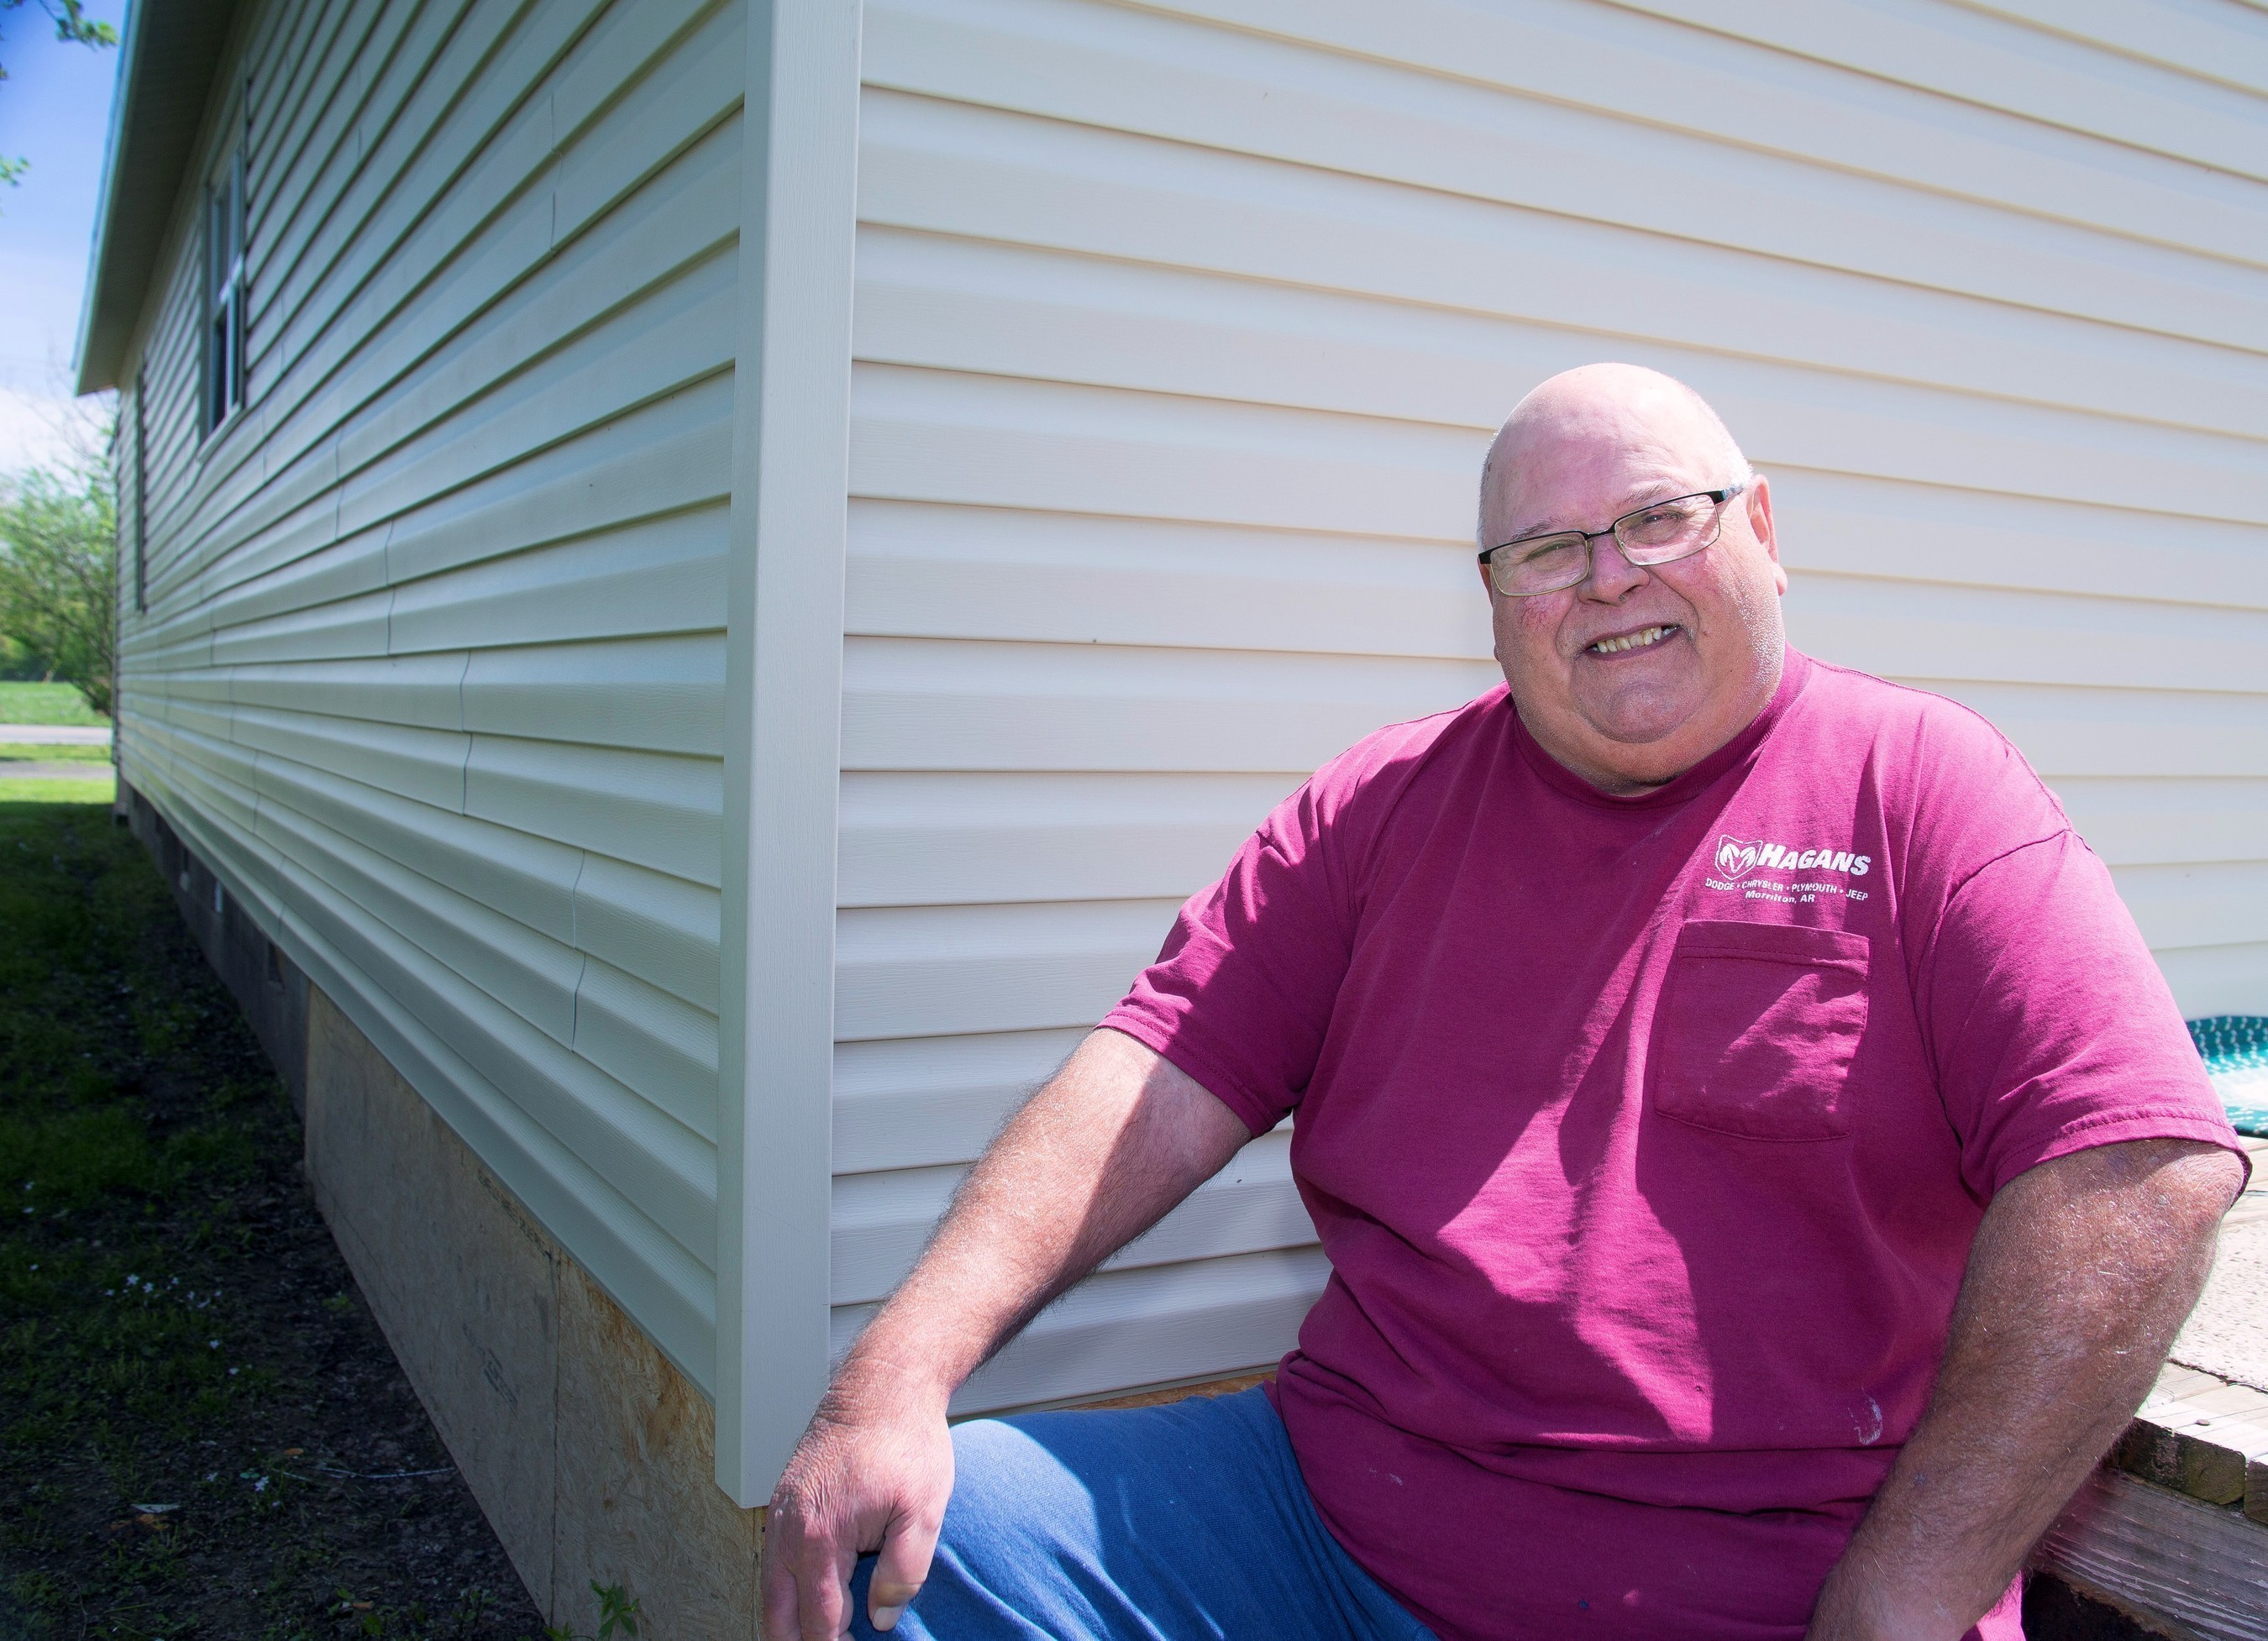 Kenneth Hinkston's home in Atkins, Arkansas received a new roof and new siding with the help of a Special Needs Assistance Program (SNAP) grant from River Town Bank and the Federal Home Loan Bank of Dallas. For information about SNAP grants, contact River Town Bank.